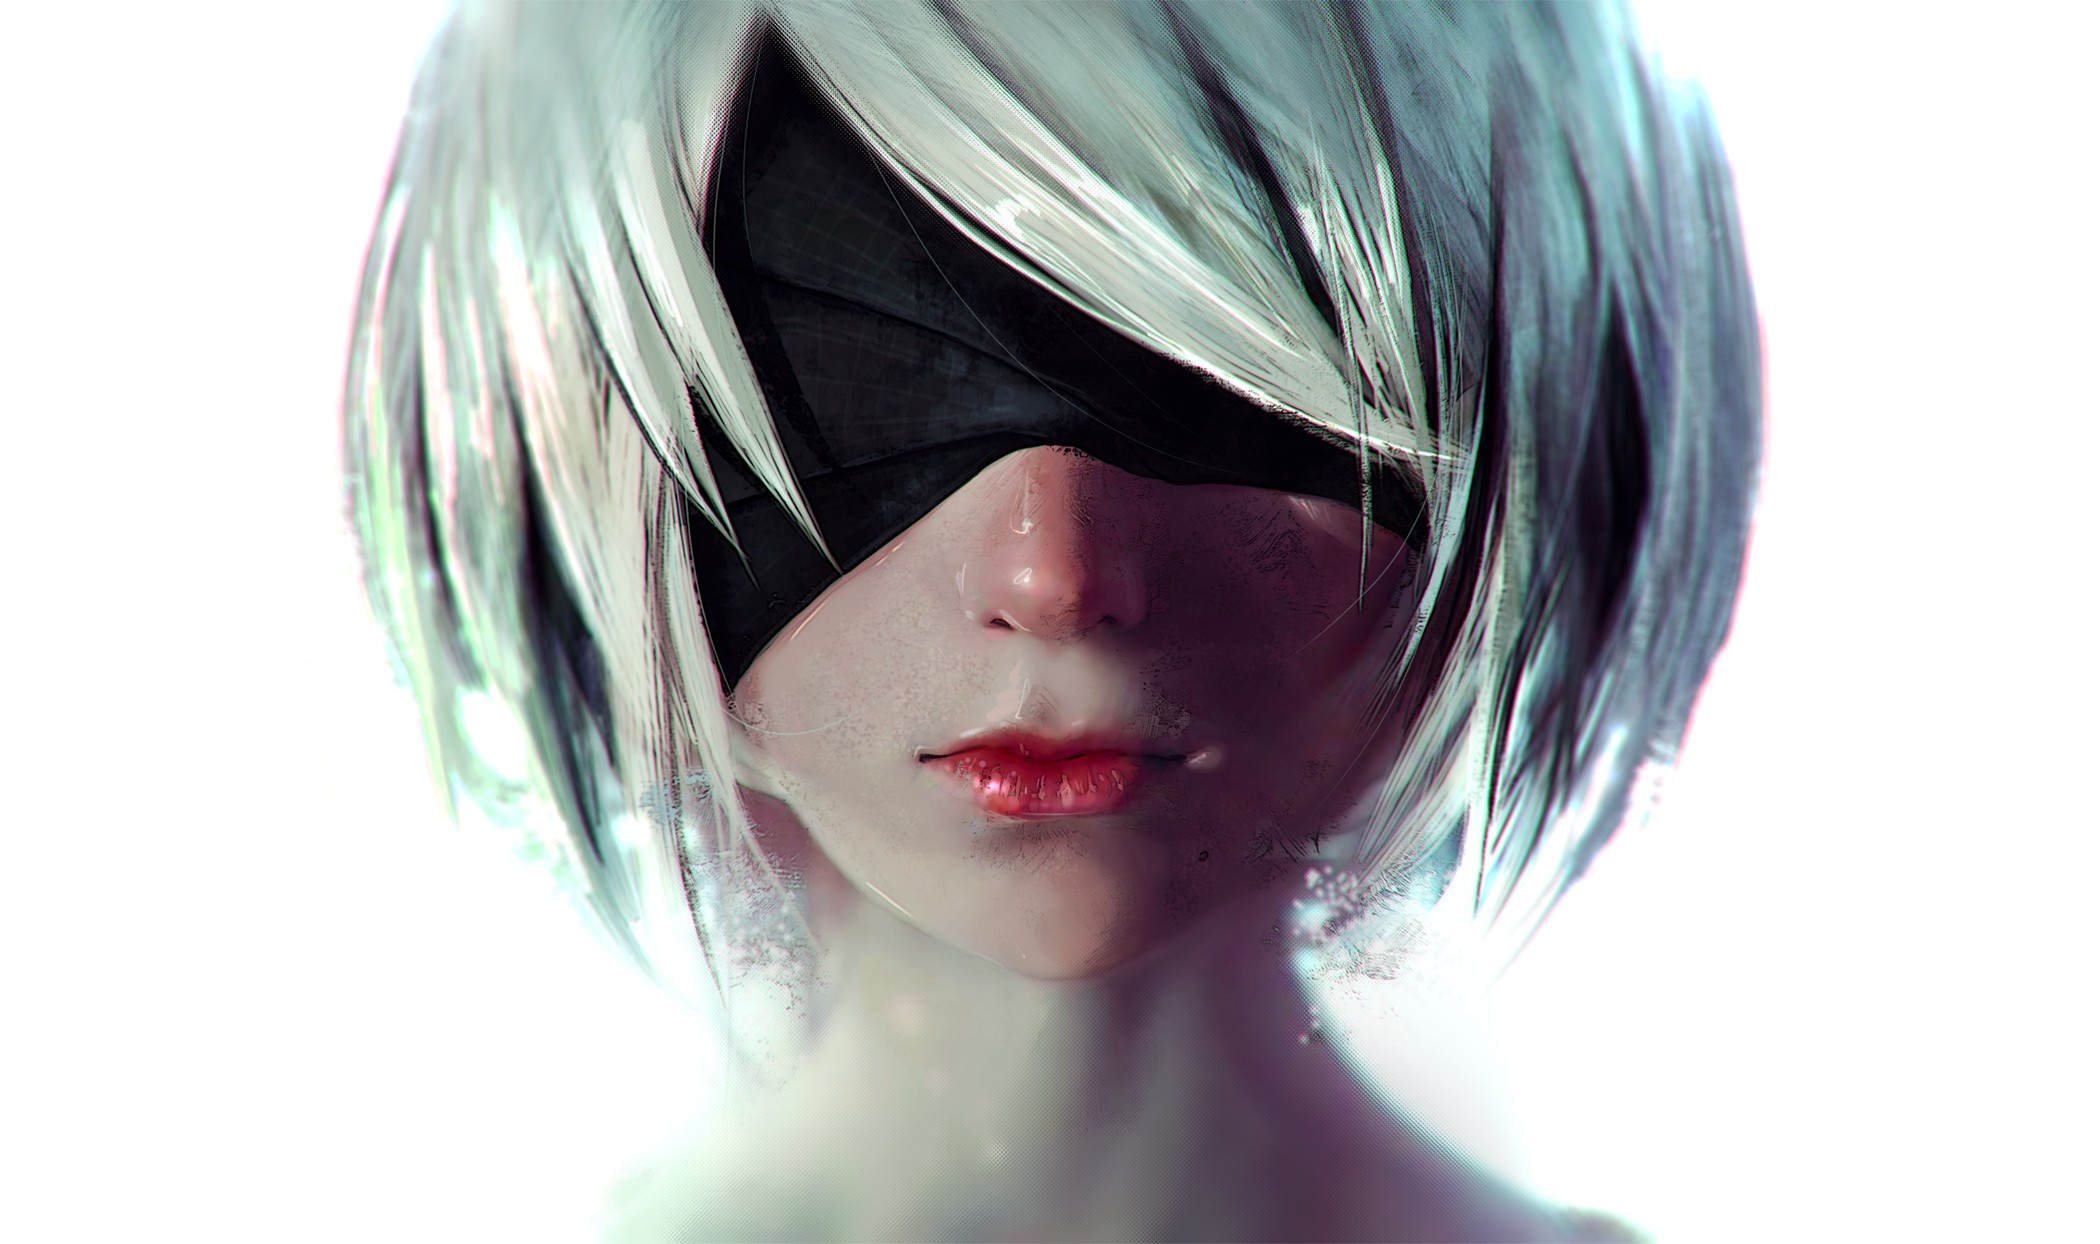 General 2100x1244 Nier: Automata 2B (Nier: Automata) NieR video game characters human android short hair video games white background white hair digital art blindfold portrait Rashed AlAkroka